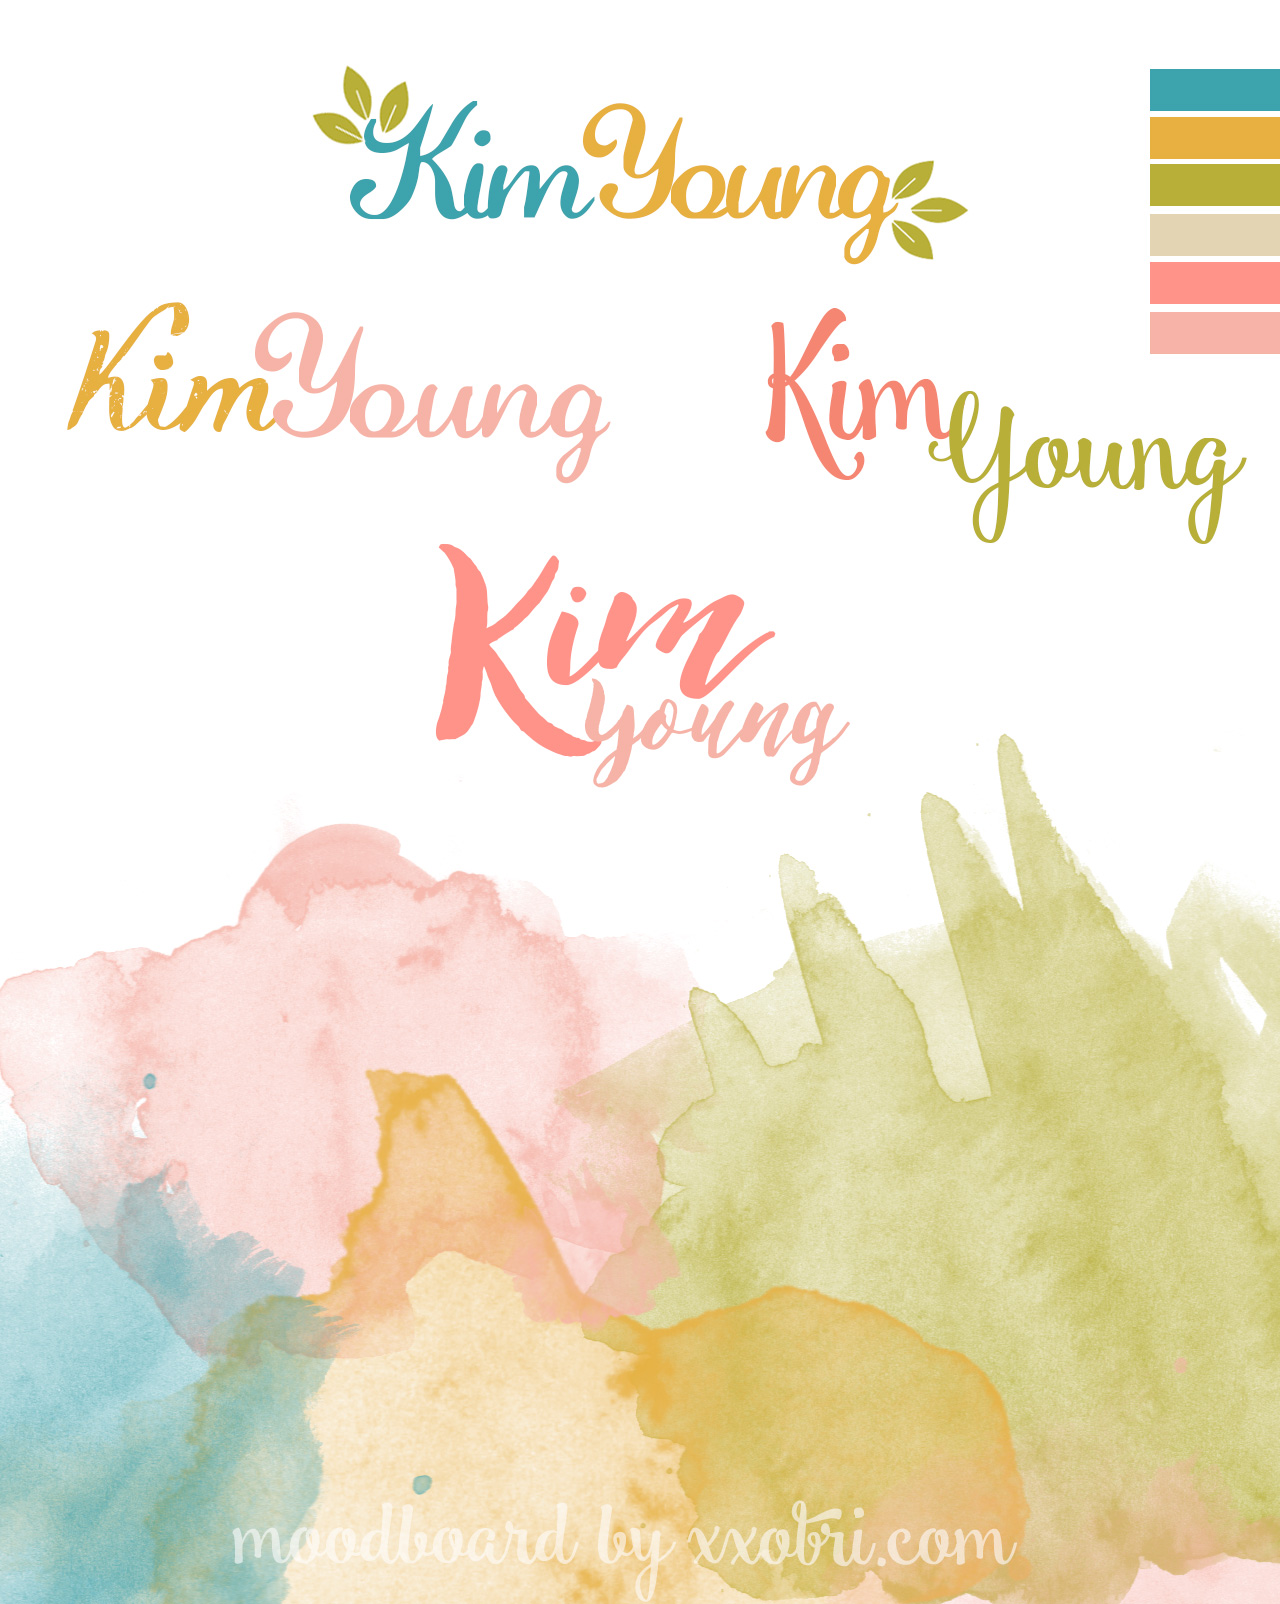 KIM  YOUNG // BRANDING & LOGO DESIGN CONCEPTS BY XXOBRI.COM